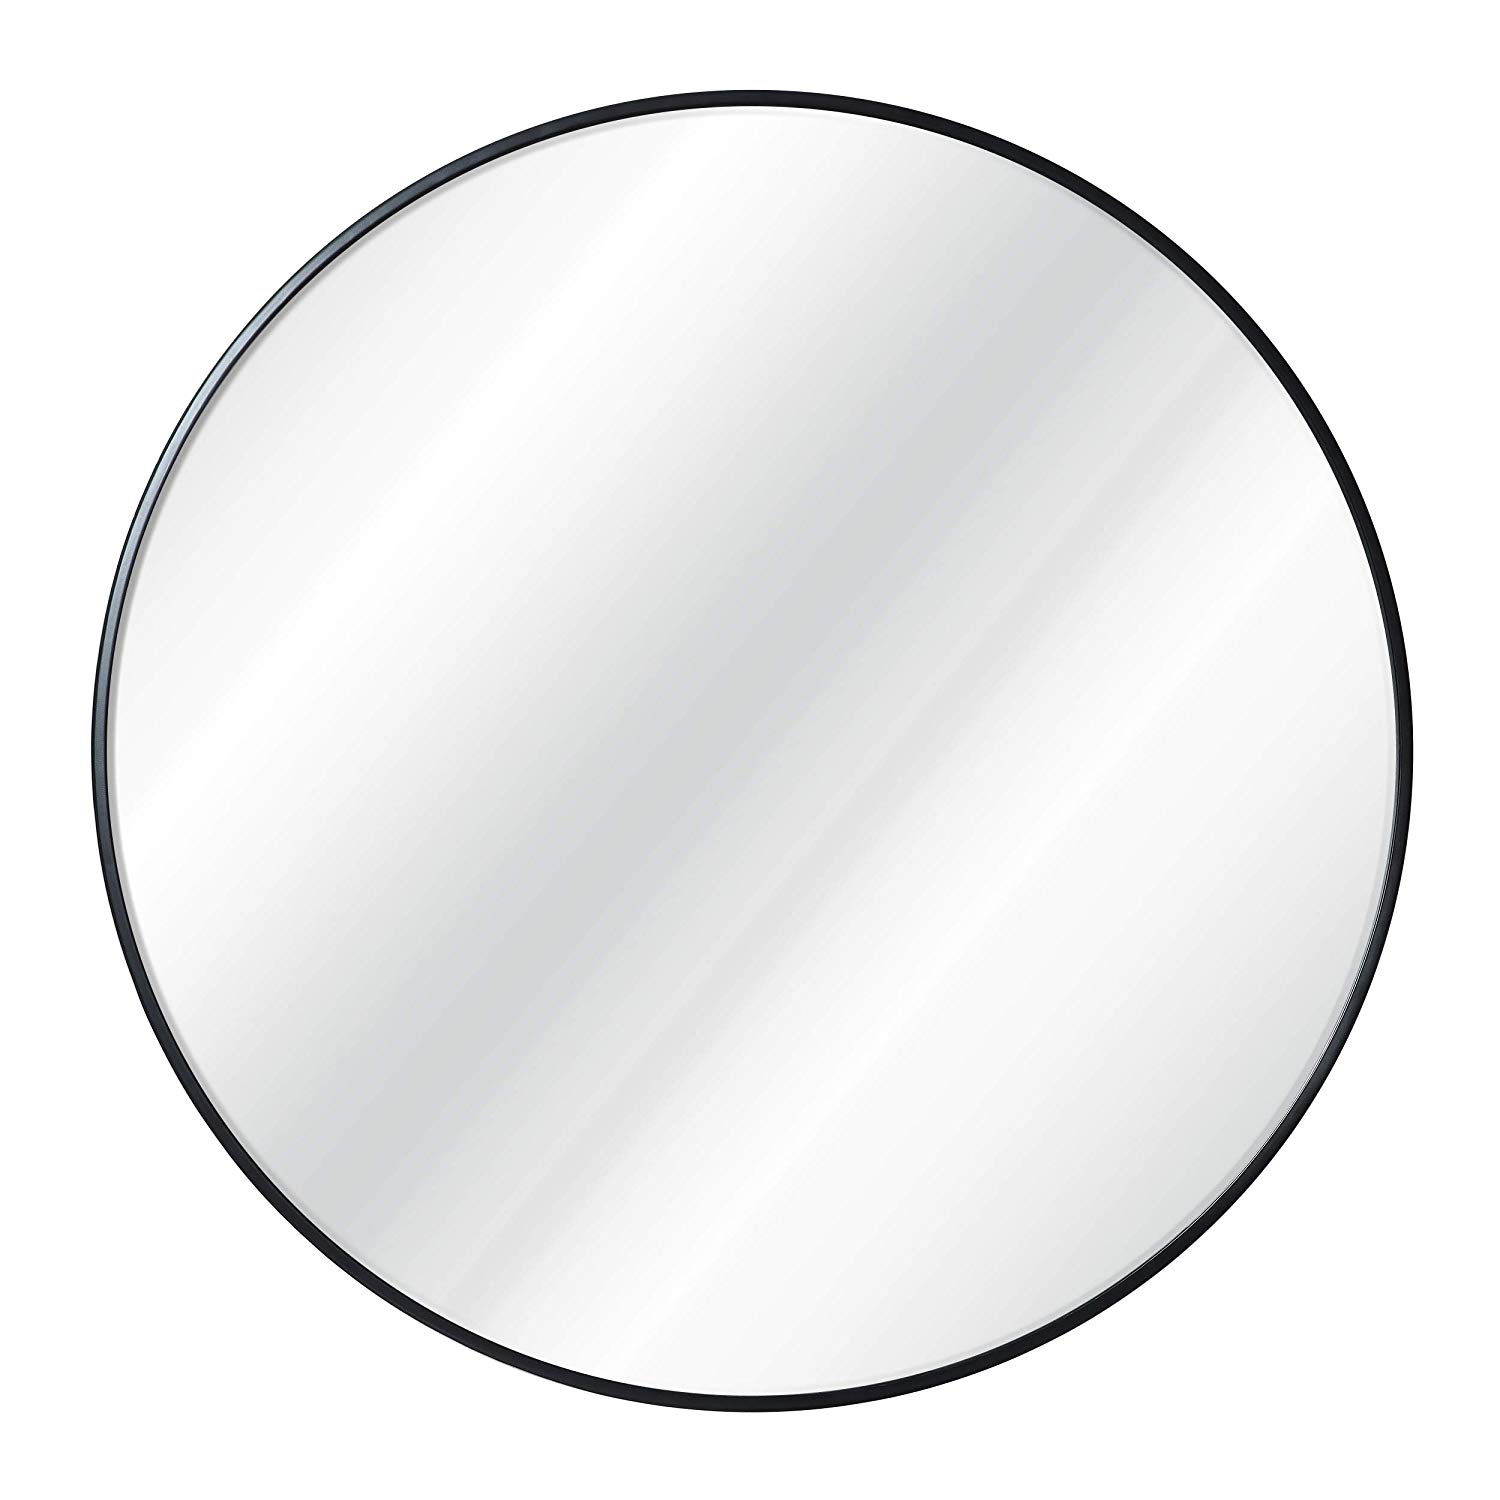 Black round wall mirror